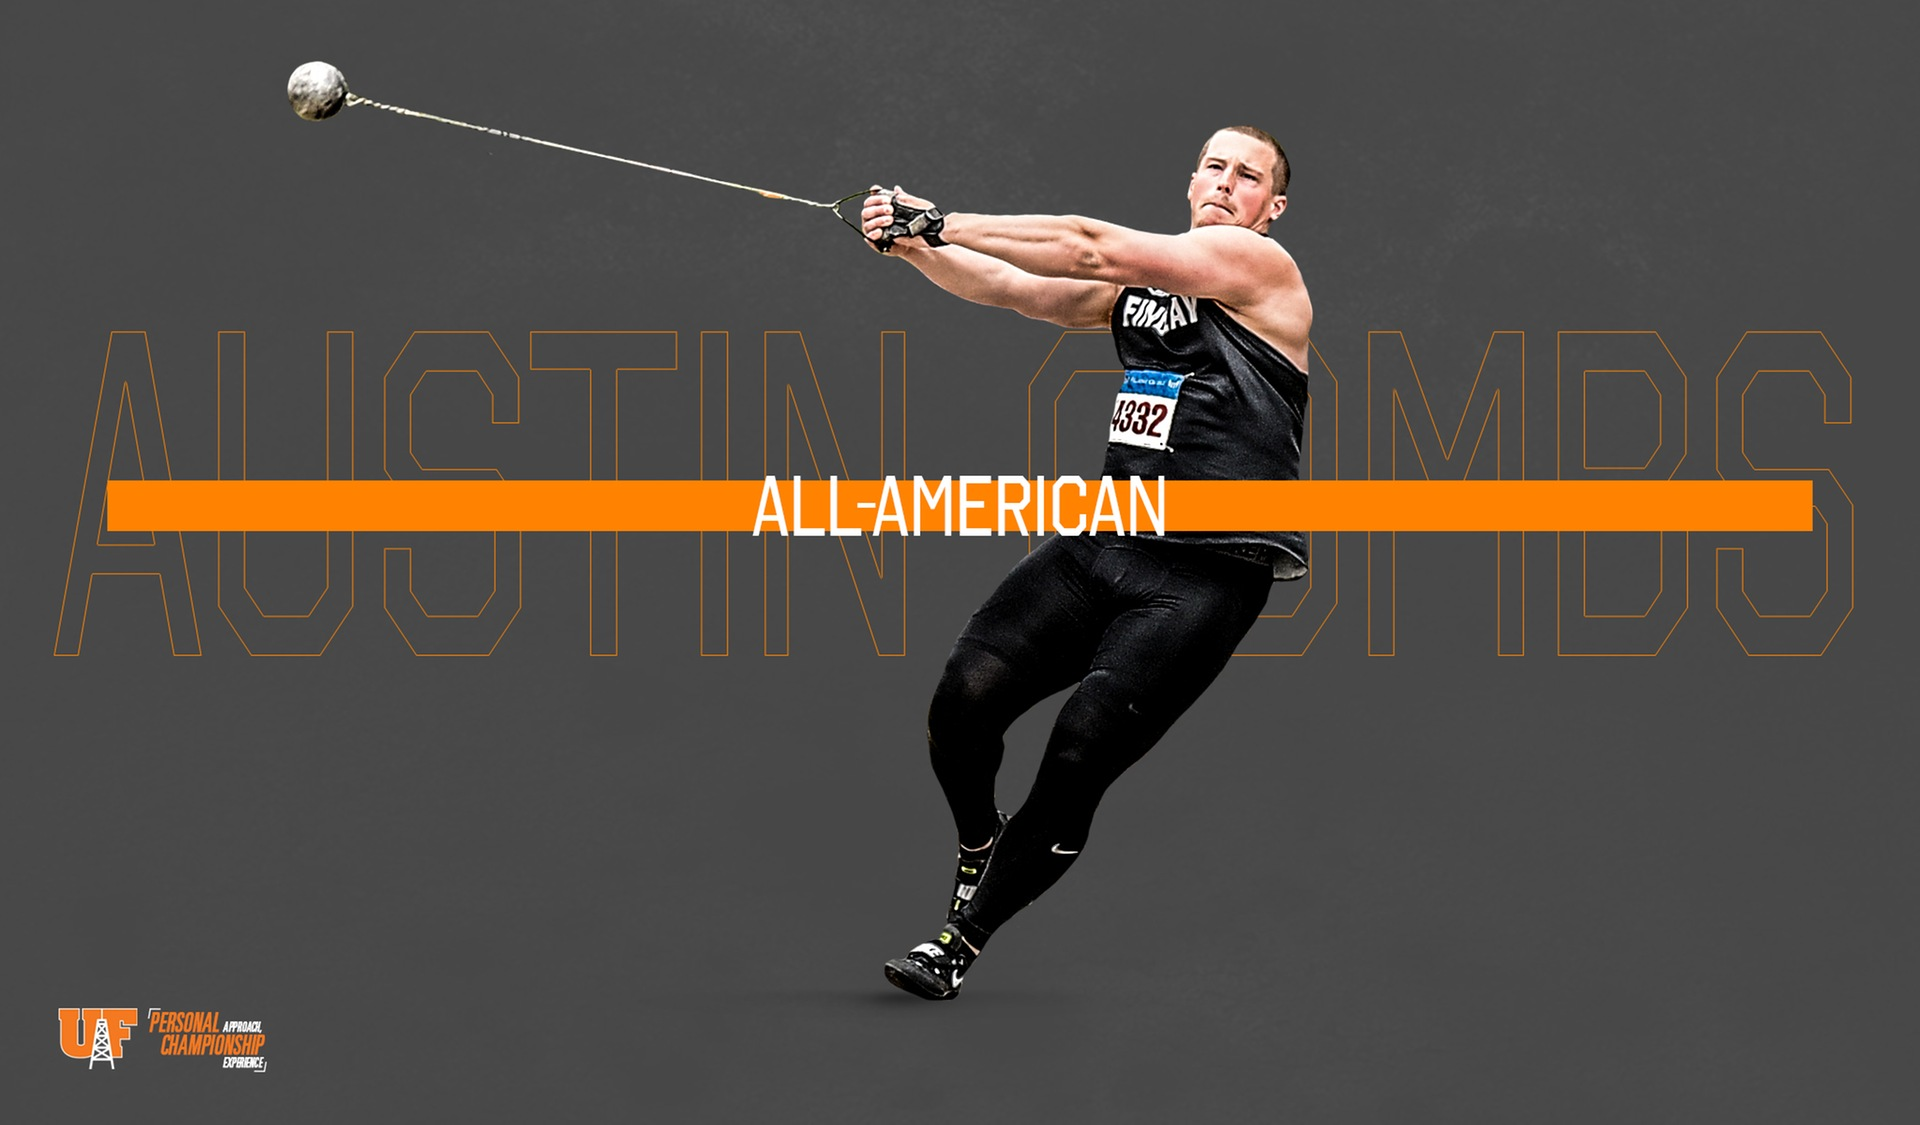 Combs Earns All-American Honors in Hammer Throw